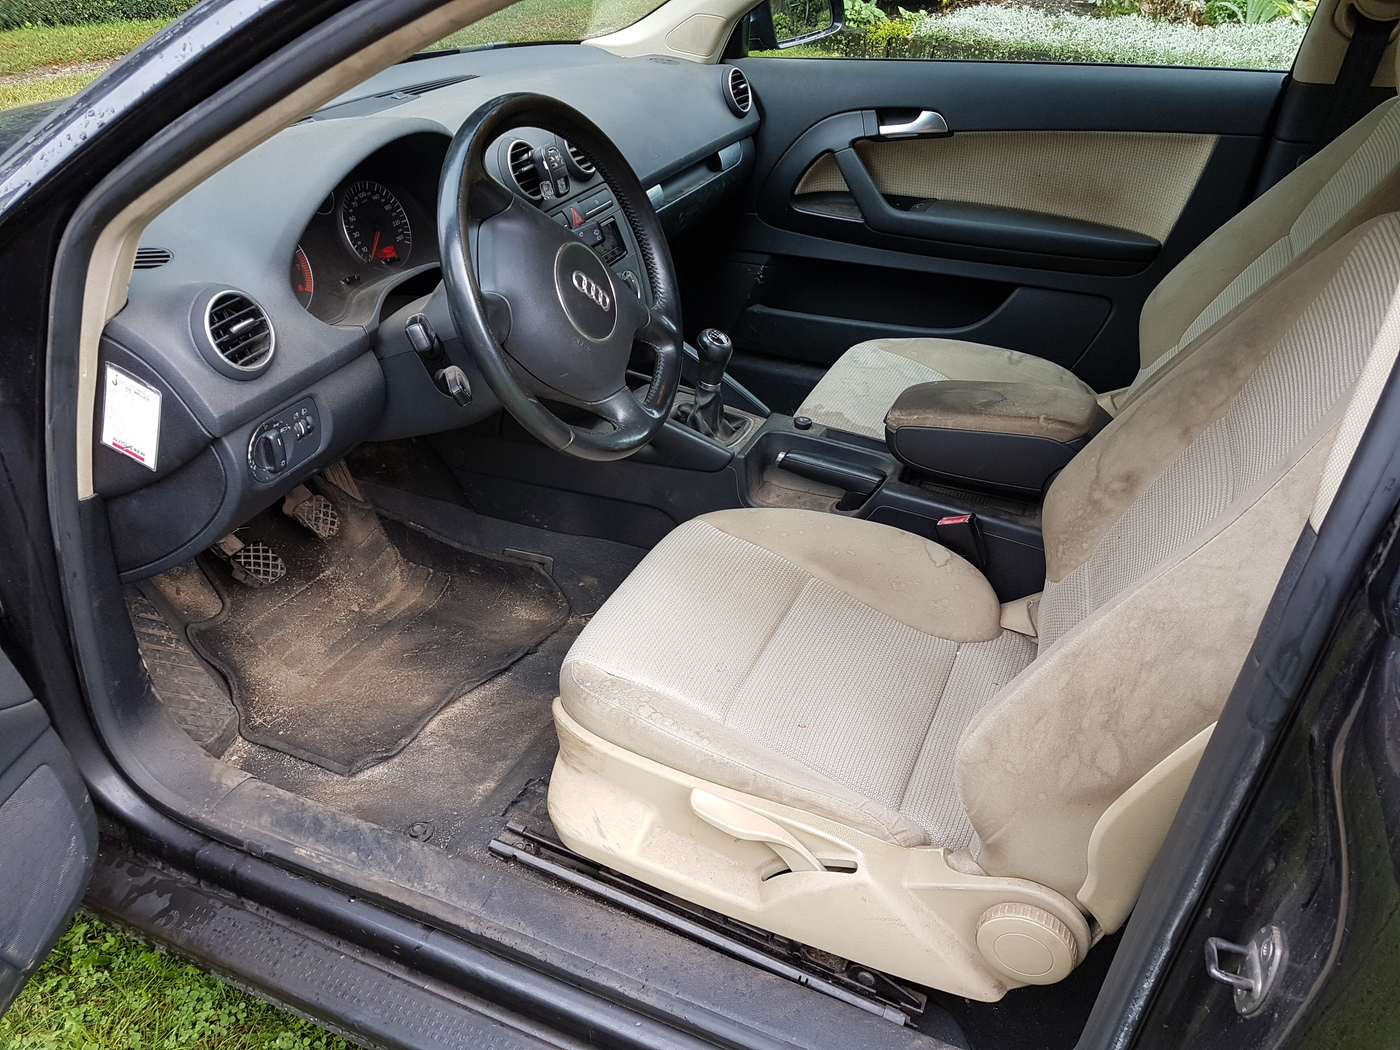 Audi A3 Interieur reiniging | Carclean.com Forum